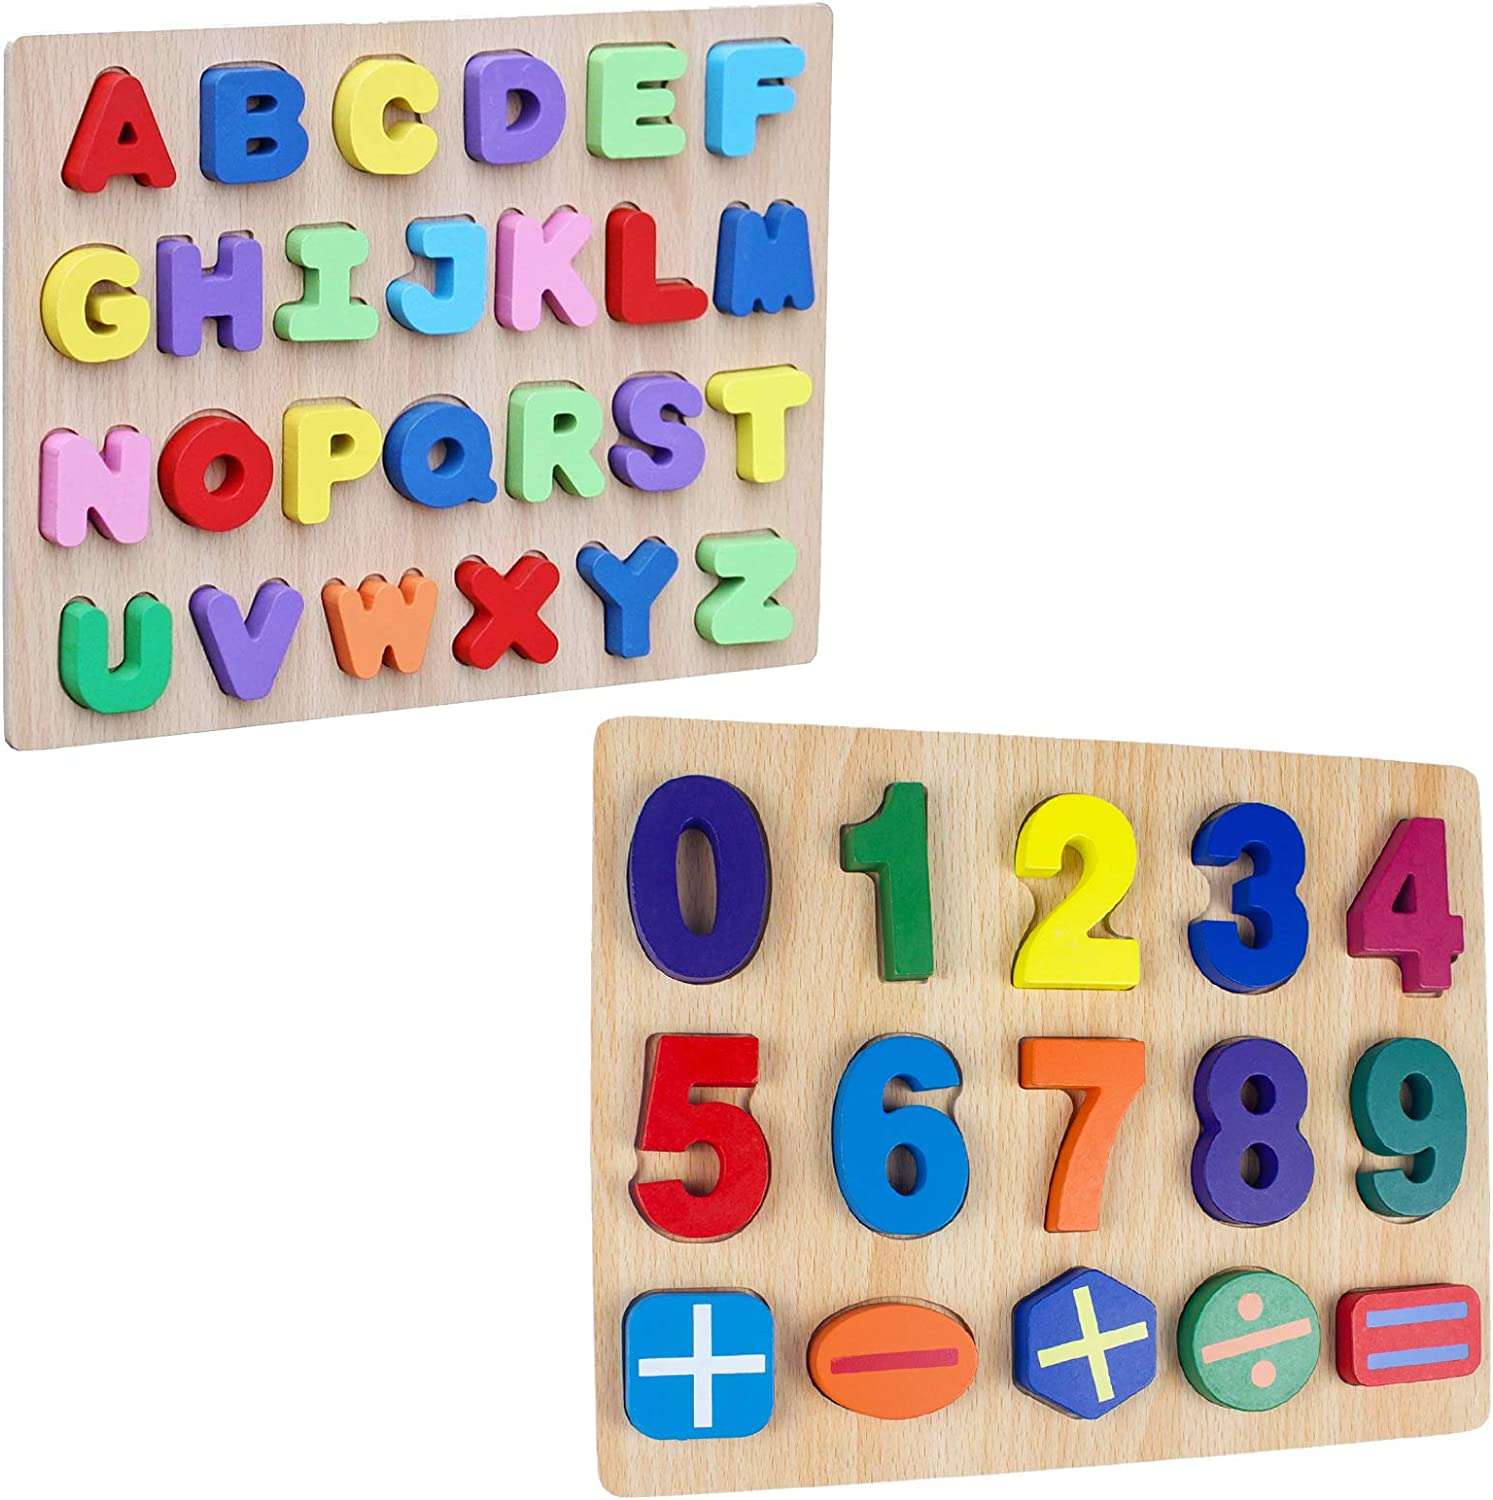 Timy Wooden OFFer Regular dealer Alphabet Puzzle and ABC Toddlers for Number